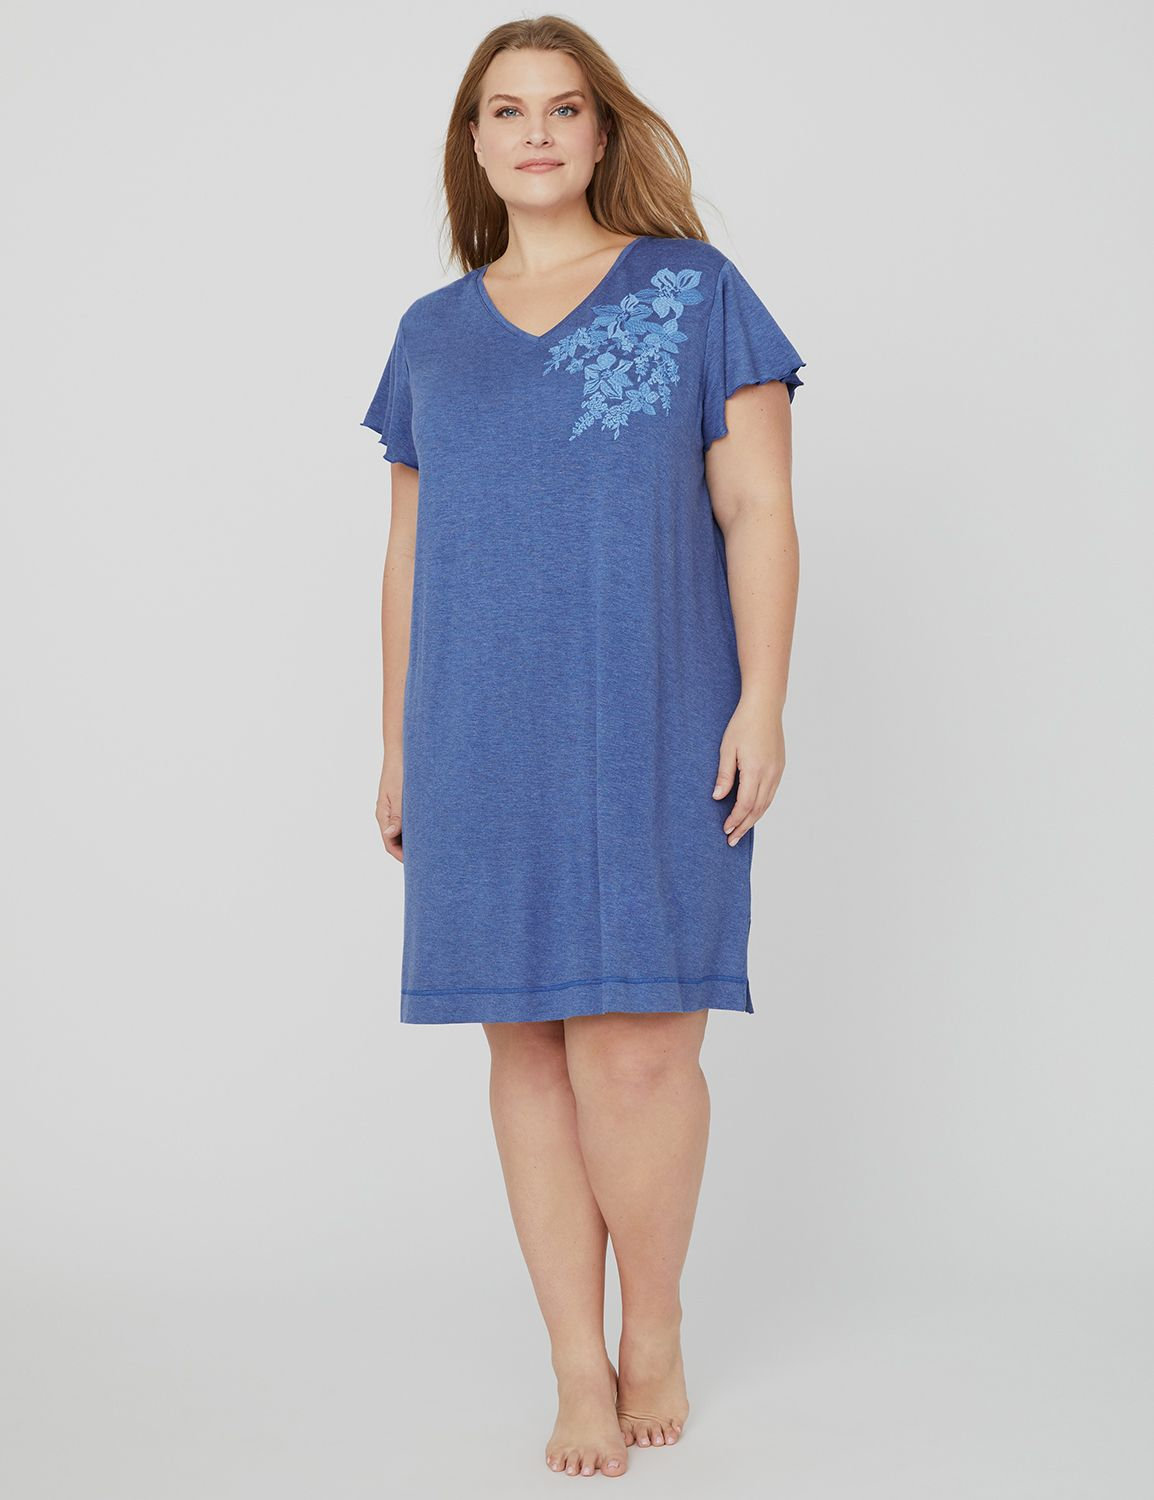 Embroidered Terry Sleep Tee 1088486- Embroidered SS f/t sleepsh MP-300096256